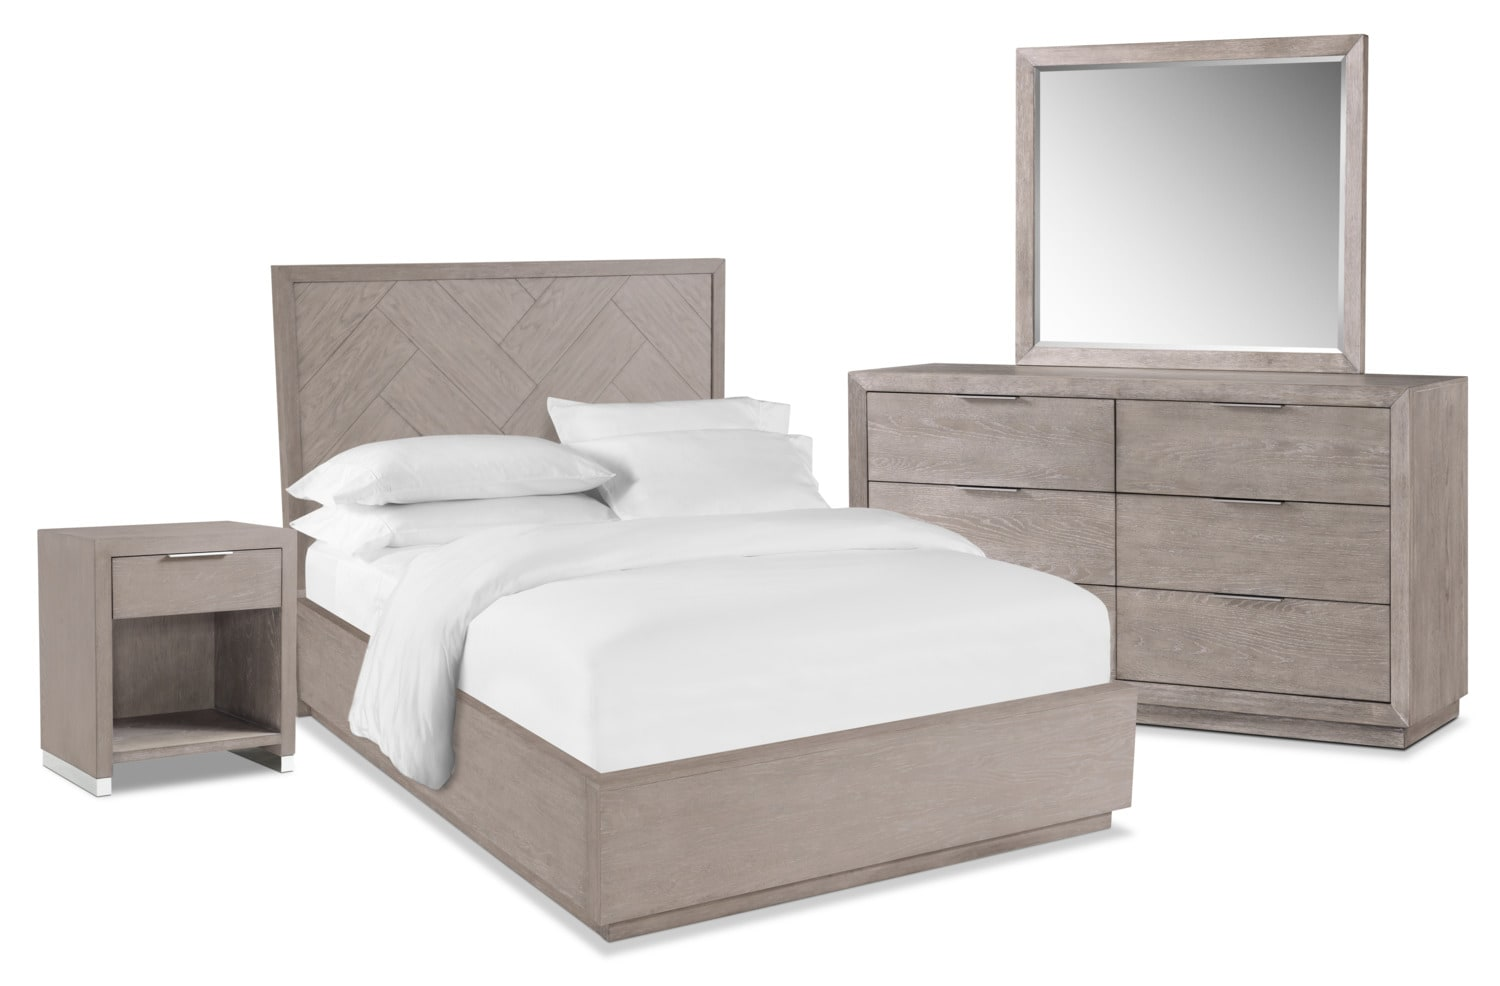 Zen 6-Piece Bedroom Set with Nightstand, Dresser and Mirror